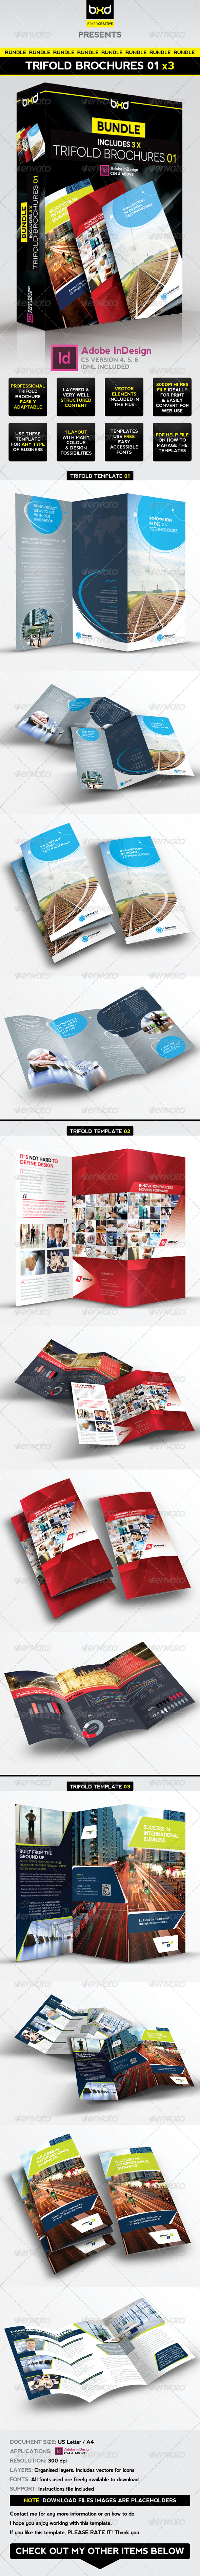 Trifold Brochures Bundle - InDesign Layout 01 - Corporate Brochures